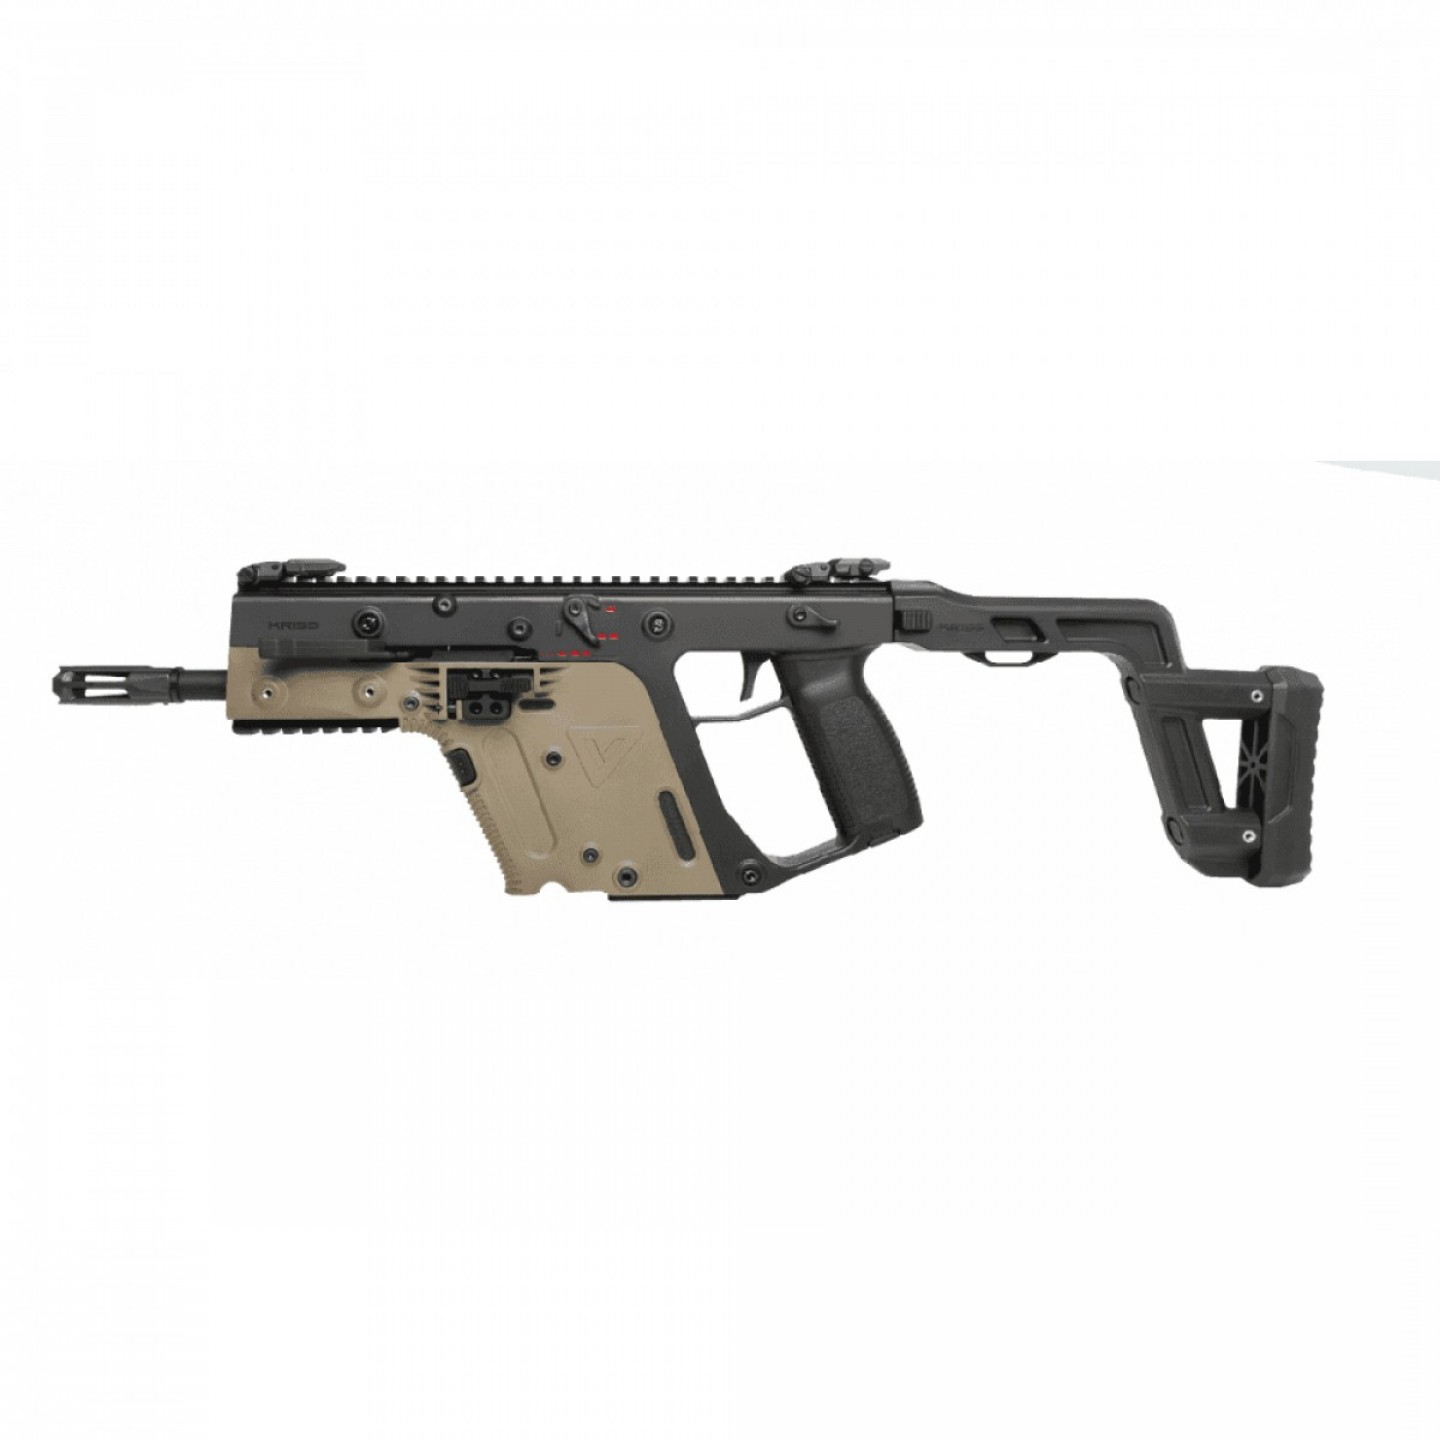 Airsoft KWA KRISS Vector: Krytac Kriss Vector Aeg Black Tan P